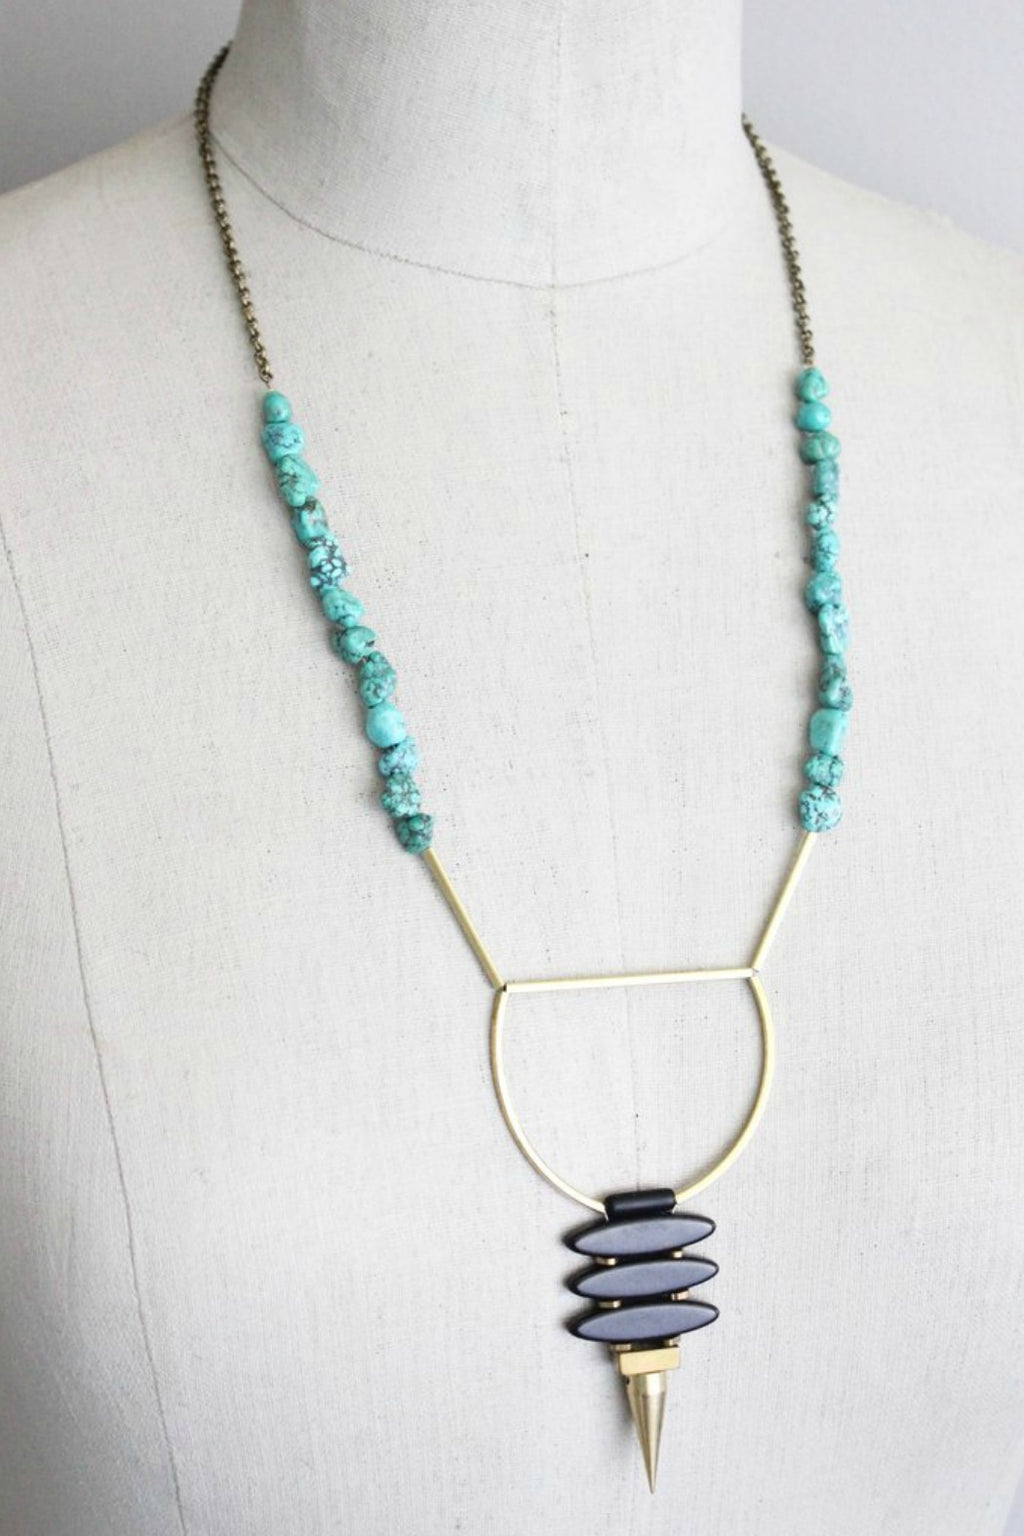 David Aubrey Handmade Turquoise Magnesite Necklace